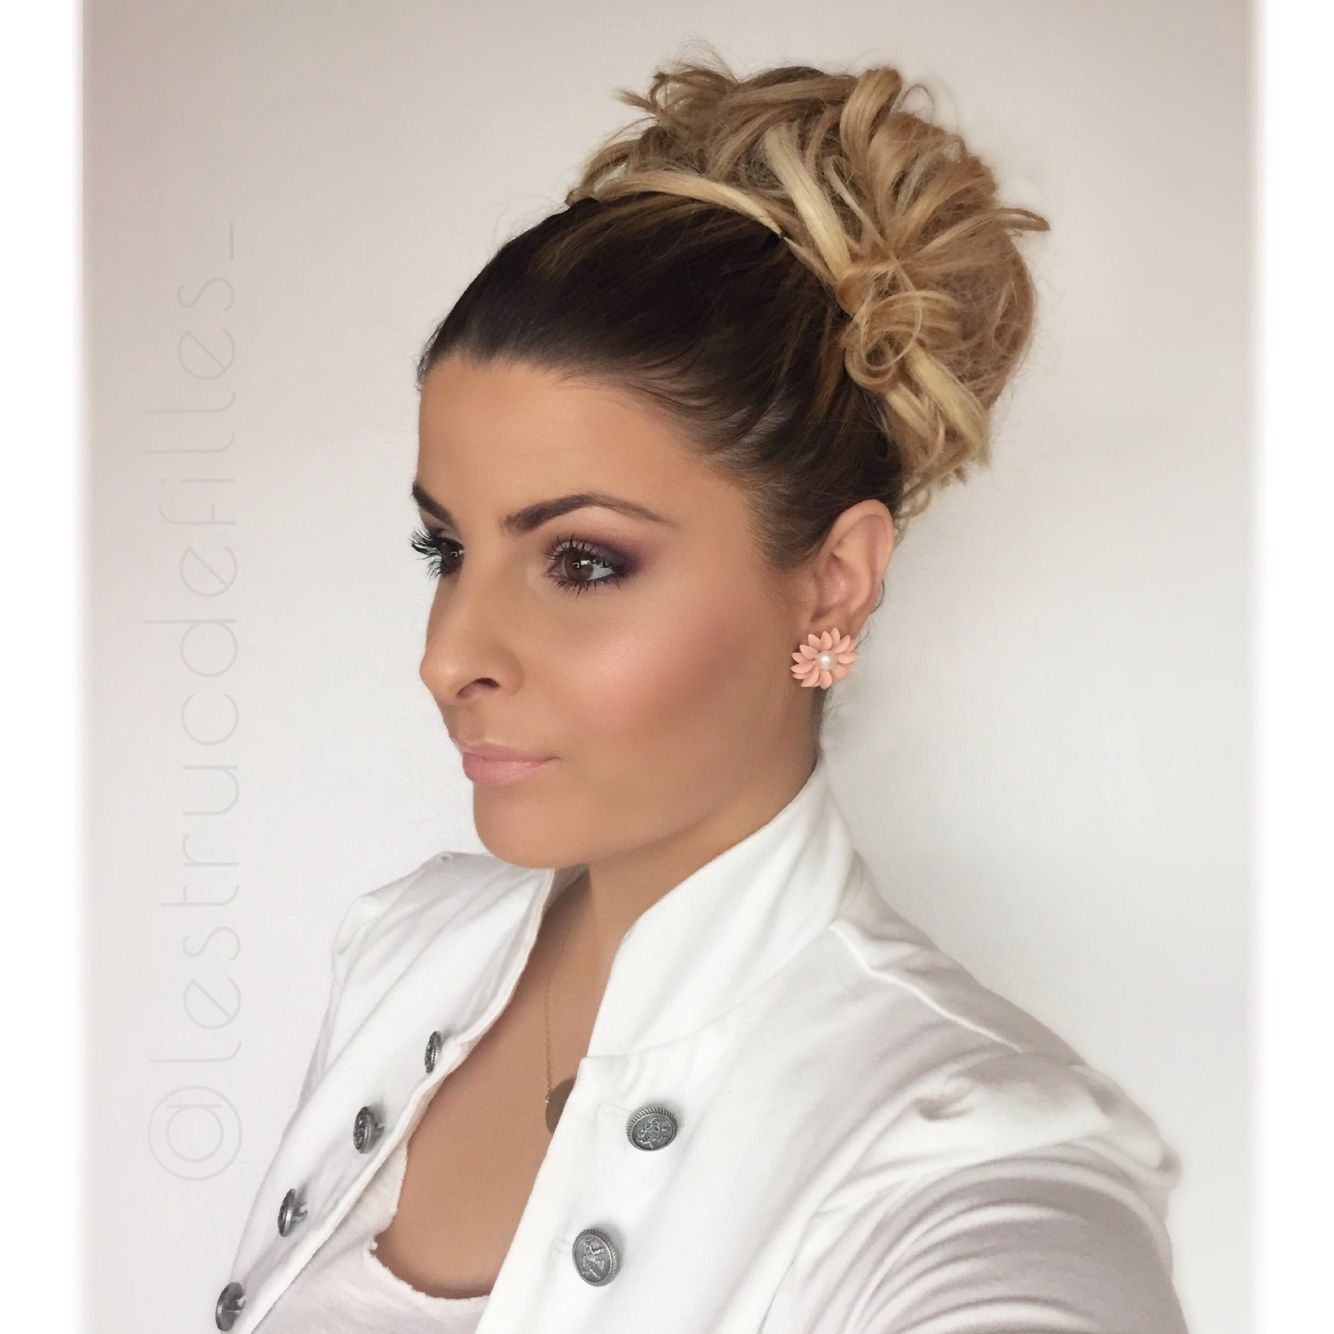 1000 Images About Idee Coiffure On Pinterest Coiffures Coupe